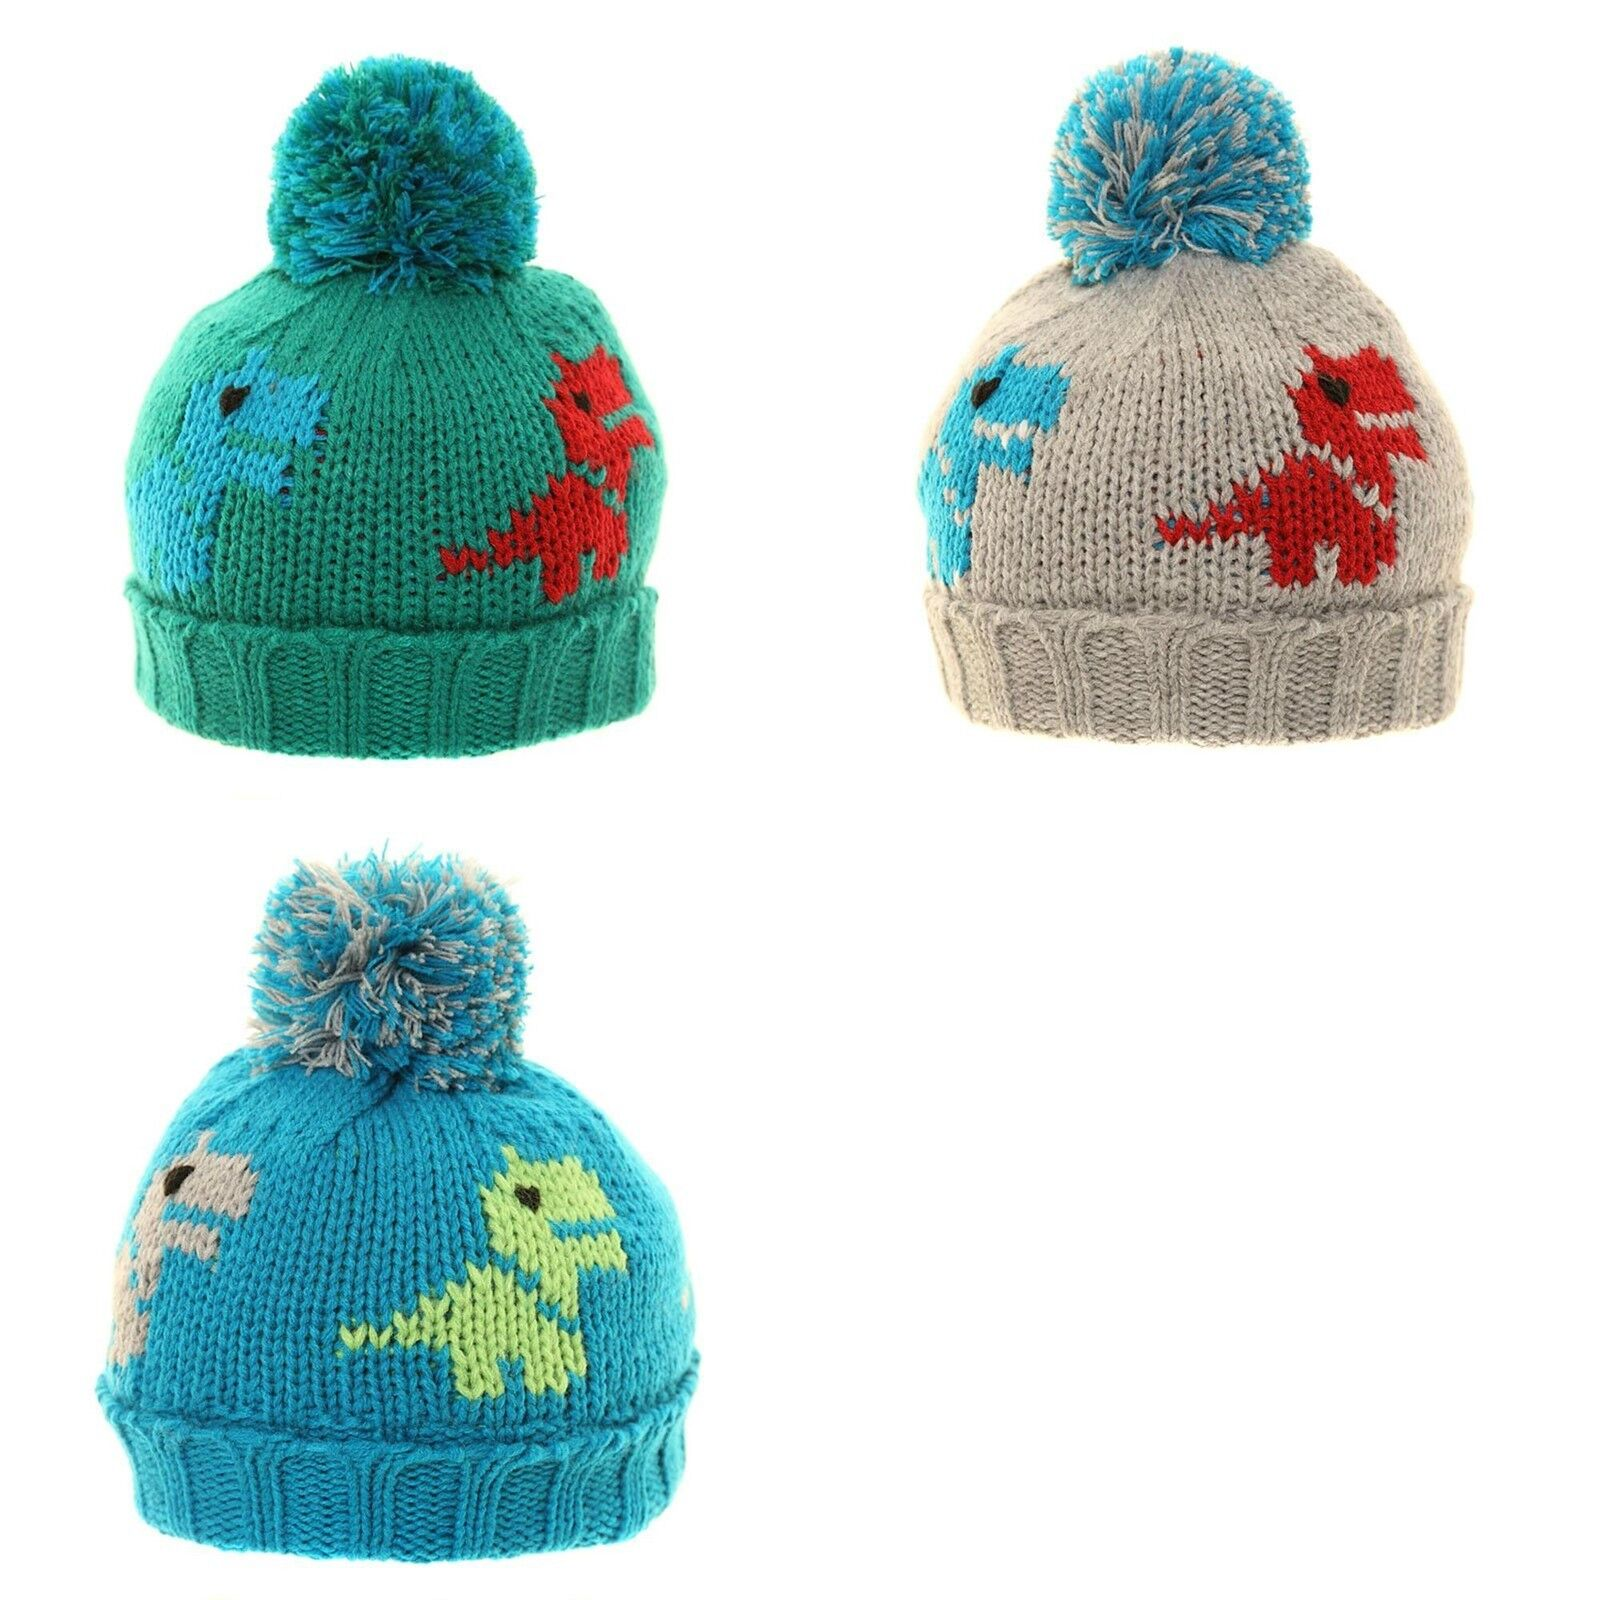 Knit Dinosaur Pattern : SKI WINTER HAT BOYS GIRLS CHUNKY KNIT DINOSAUR WOOLY WARM BEANIE POM POM KIDS...